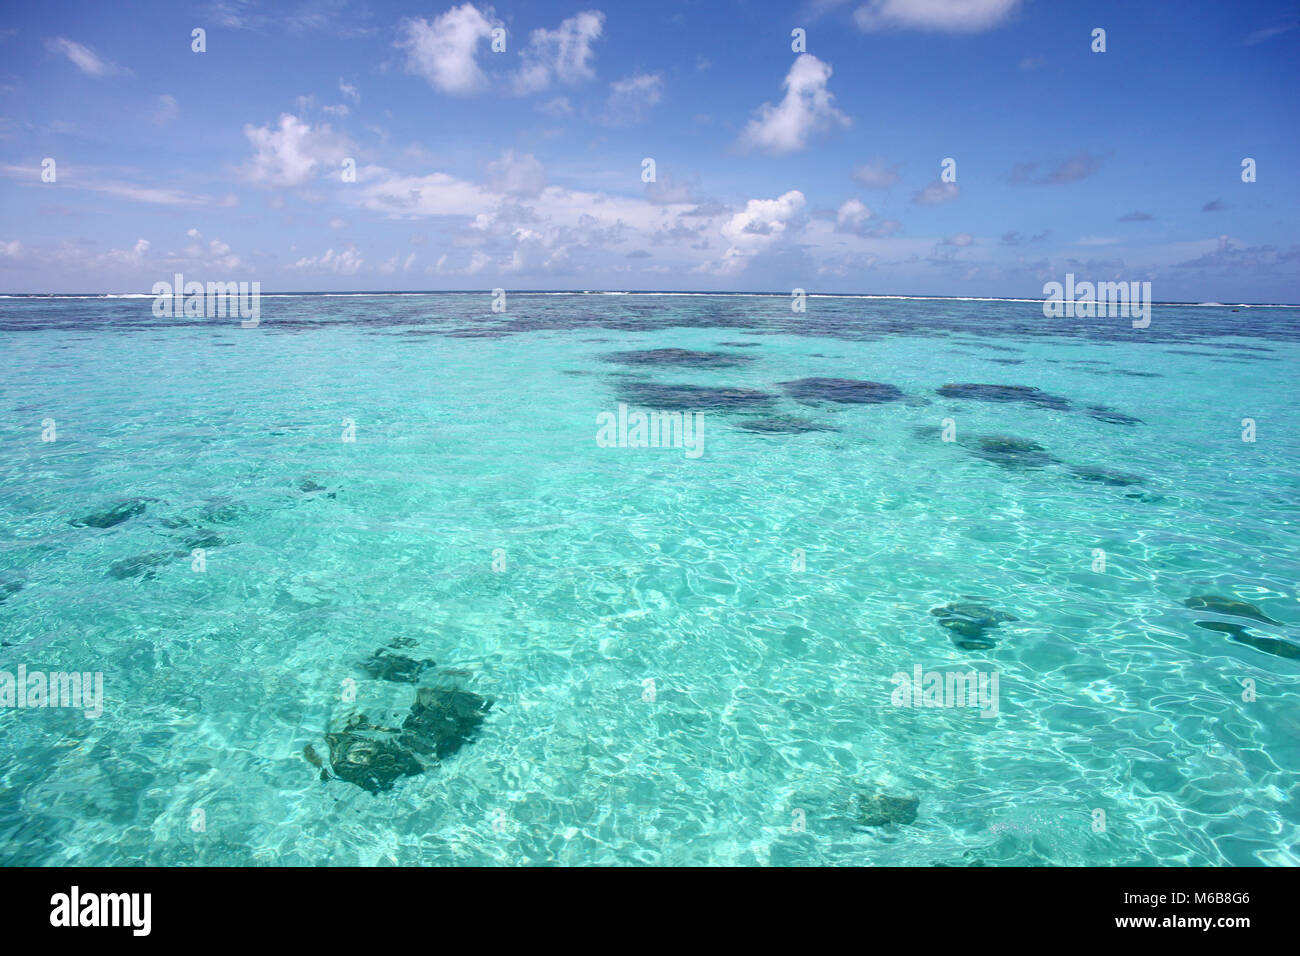 Tropical caribbean sea, clear turquoise water & beautiful blue sky, Montego Bay, Jamaica. - Stock Image